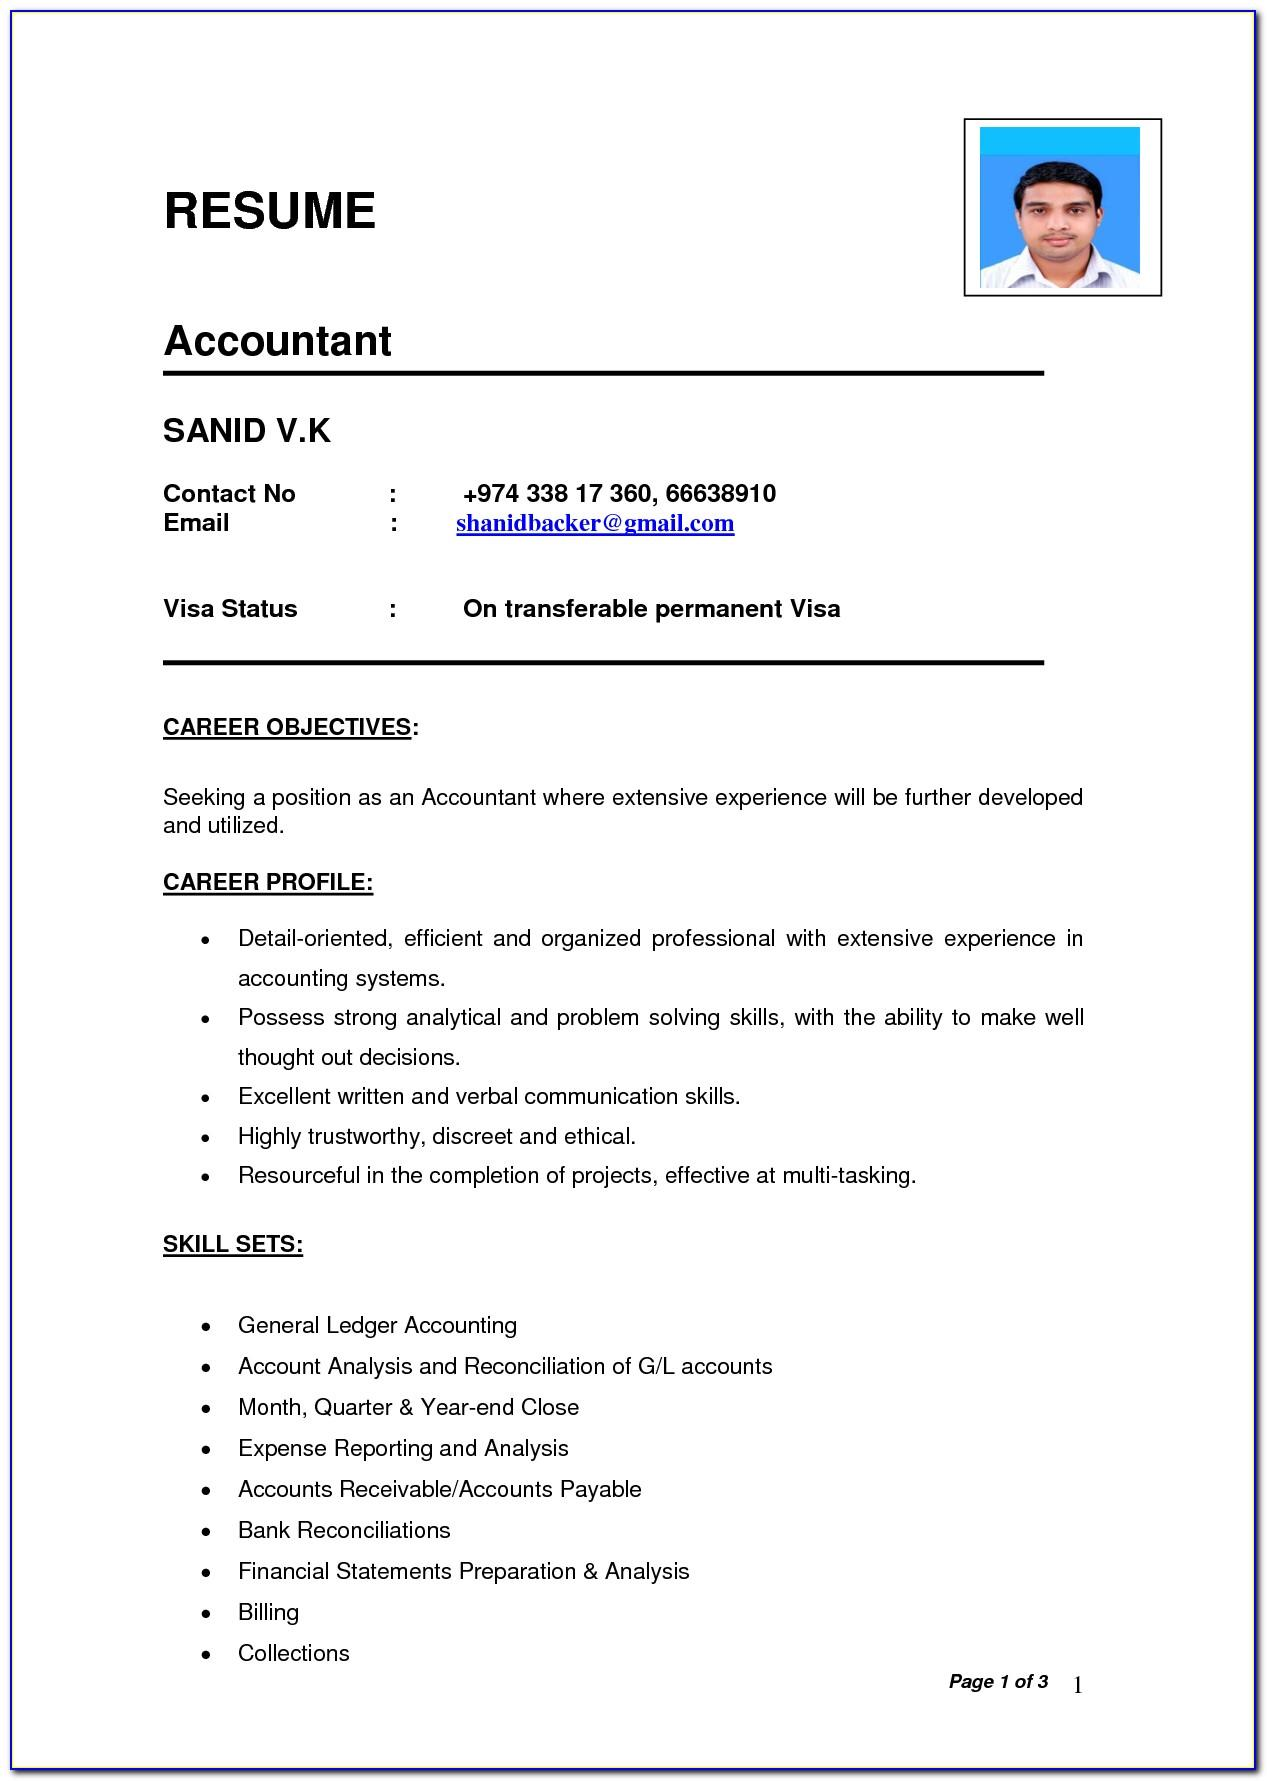 Resume Template Outline Format